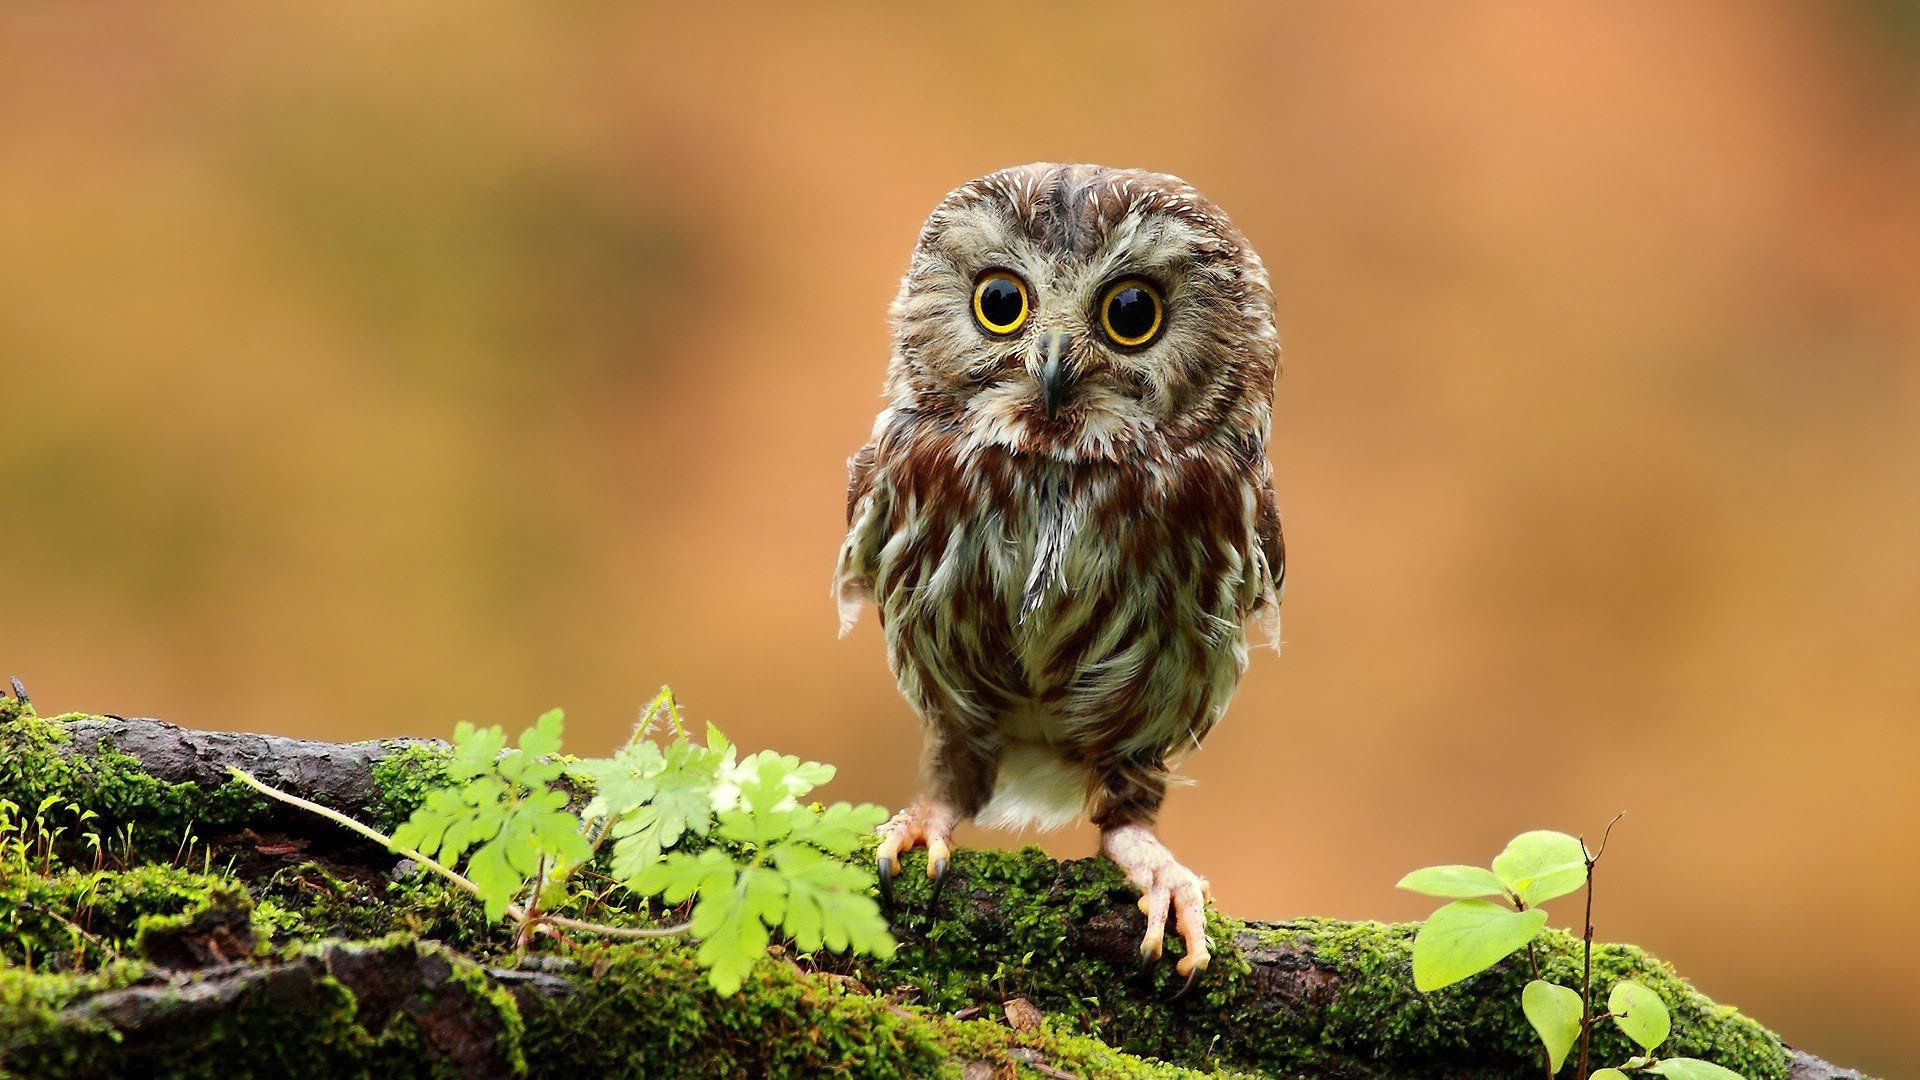 Cute Baby Owl Photos Videos And Facts Animal Hype